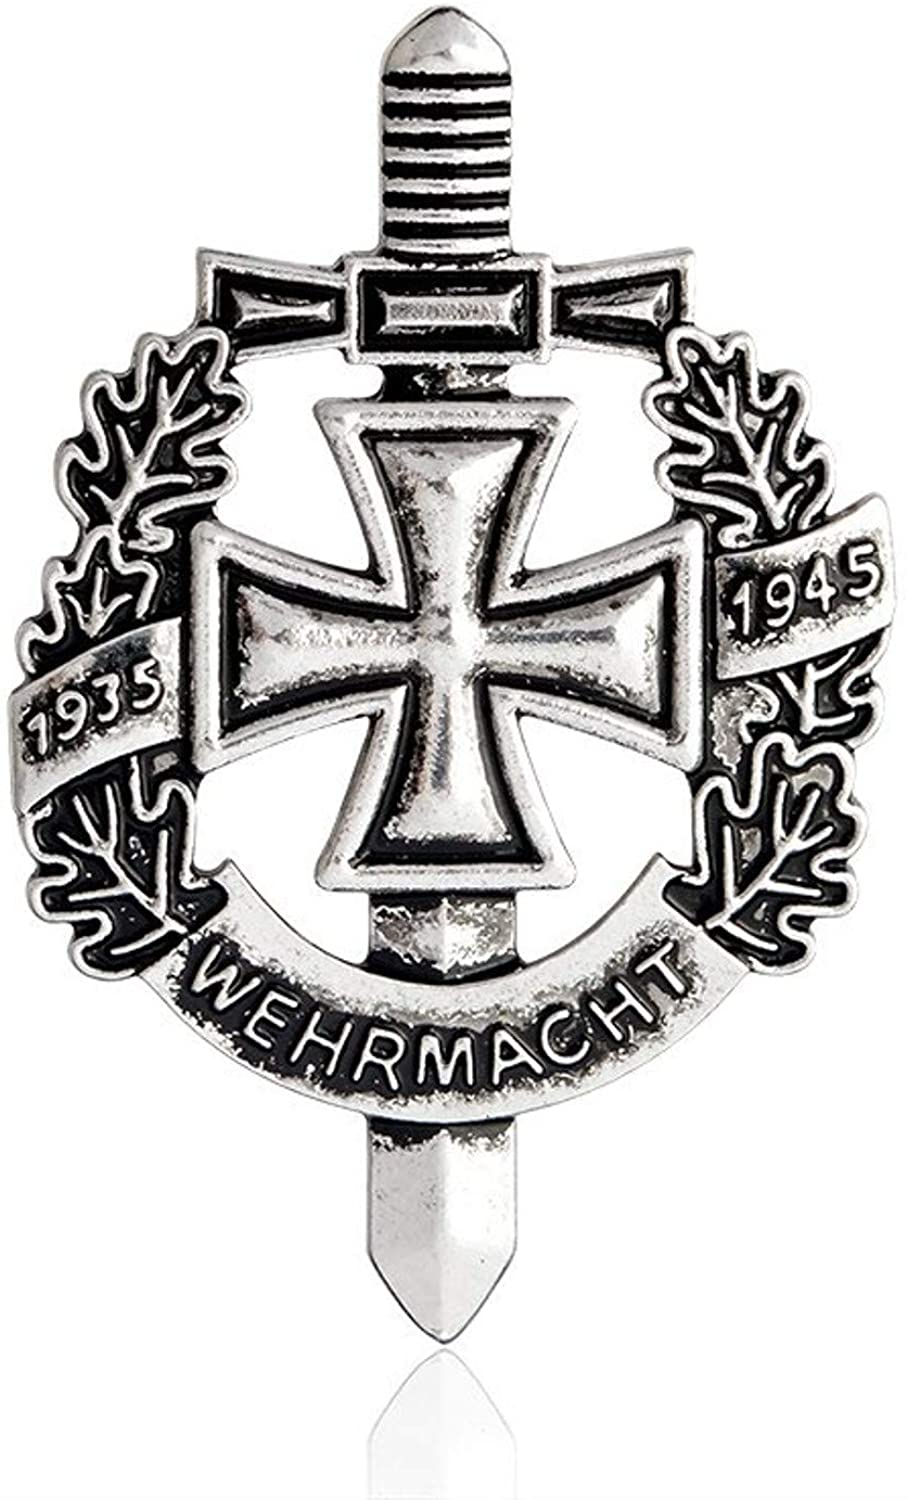 P Brooch - Ww2 German Wehrmacht Brooch 1935 1945 Antique Silver Bronze Pin Brooch Vintage